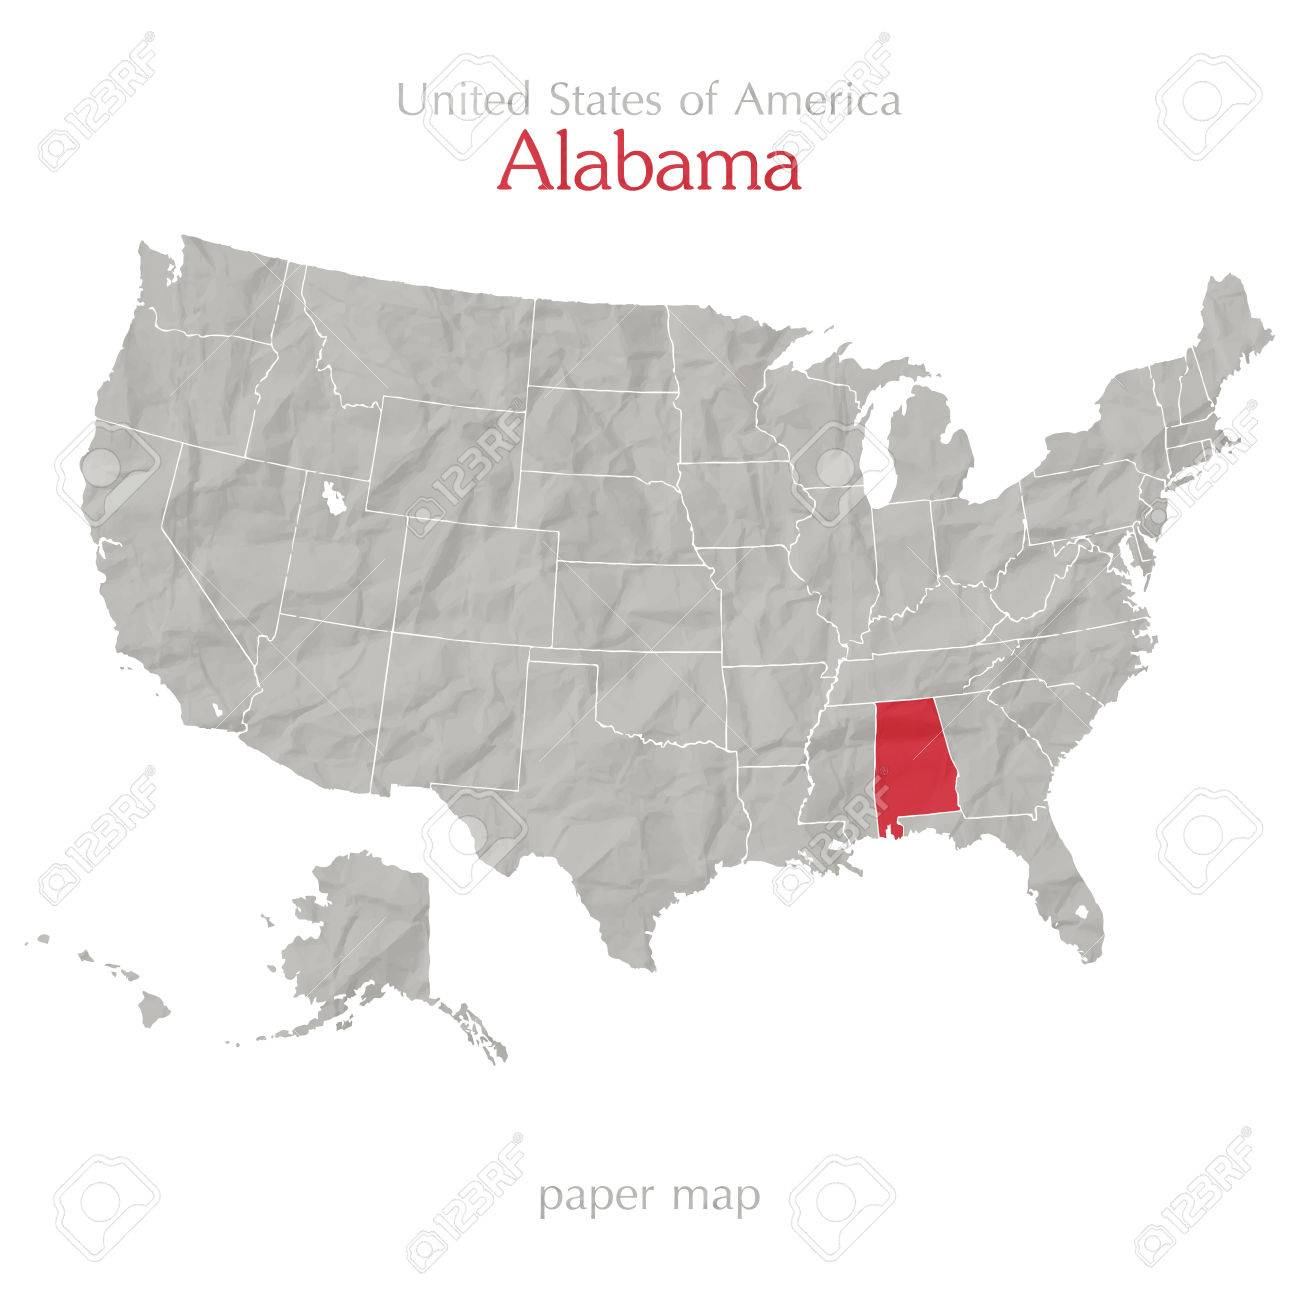 United States Of America Map And Alabama State Territory On Textured ...